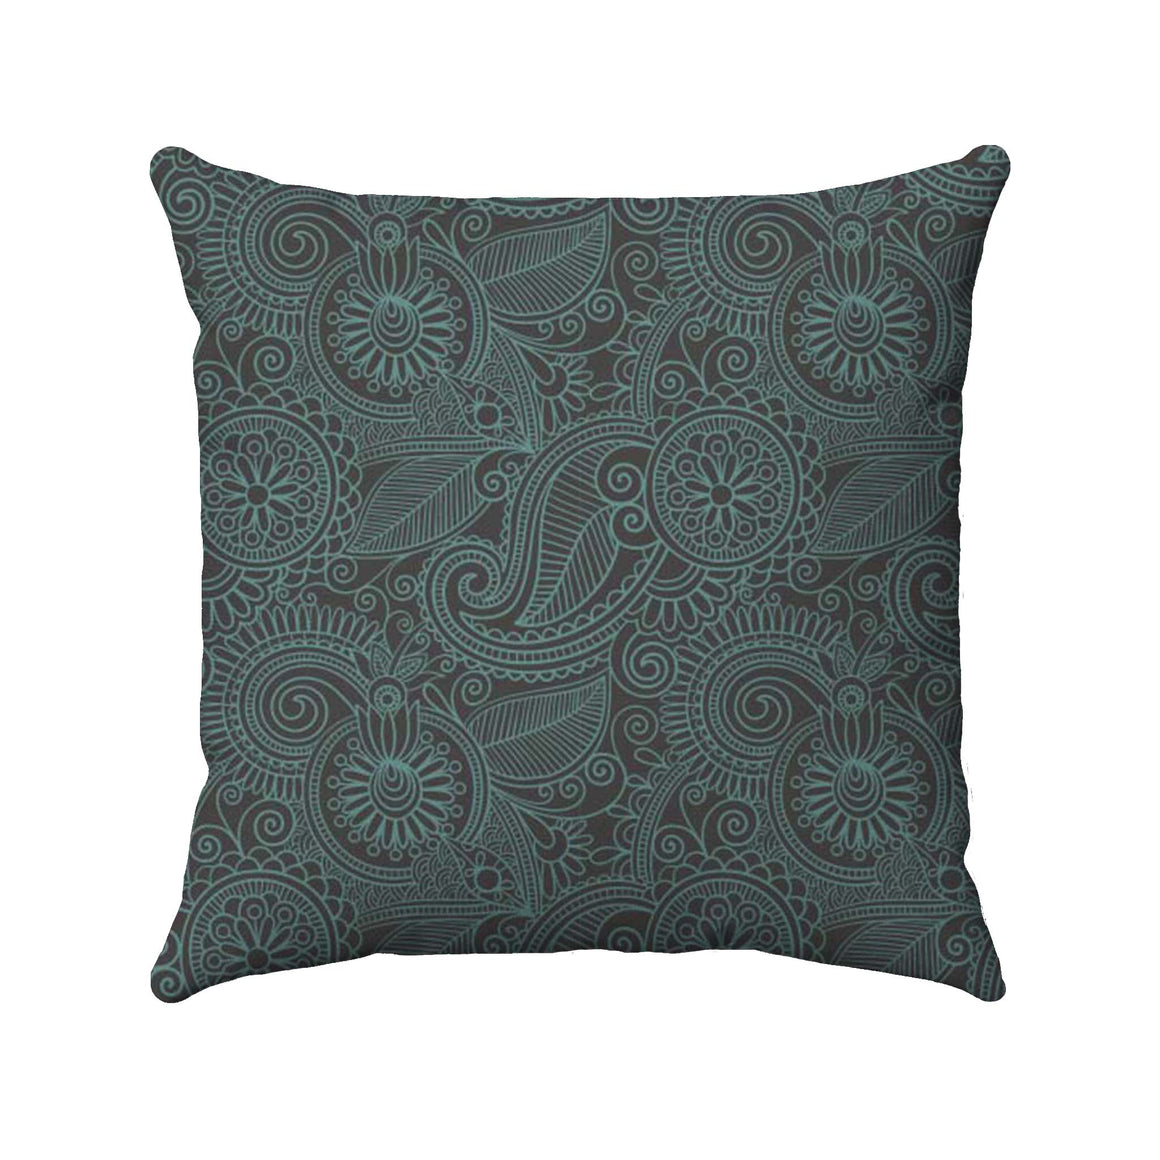 Paisley design with a stormy teal color detailed on a dark brown background